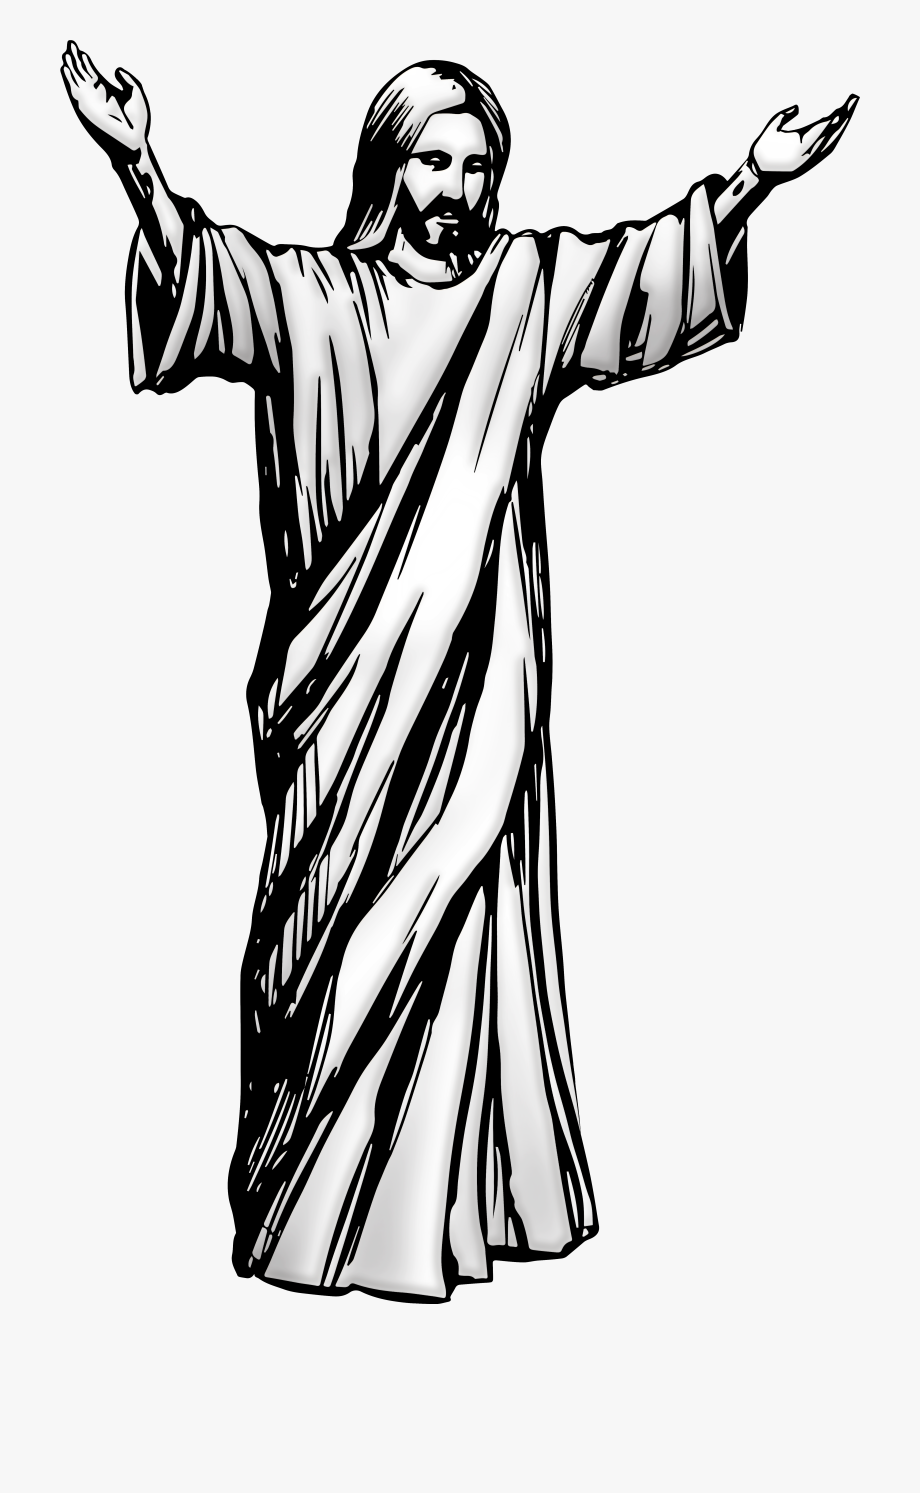 Free christian clipart black and white drawing jesus png transparent Jesus Christ Png Clip Art - Jesus Black And White #61478 - Free ... png transparent